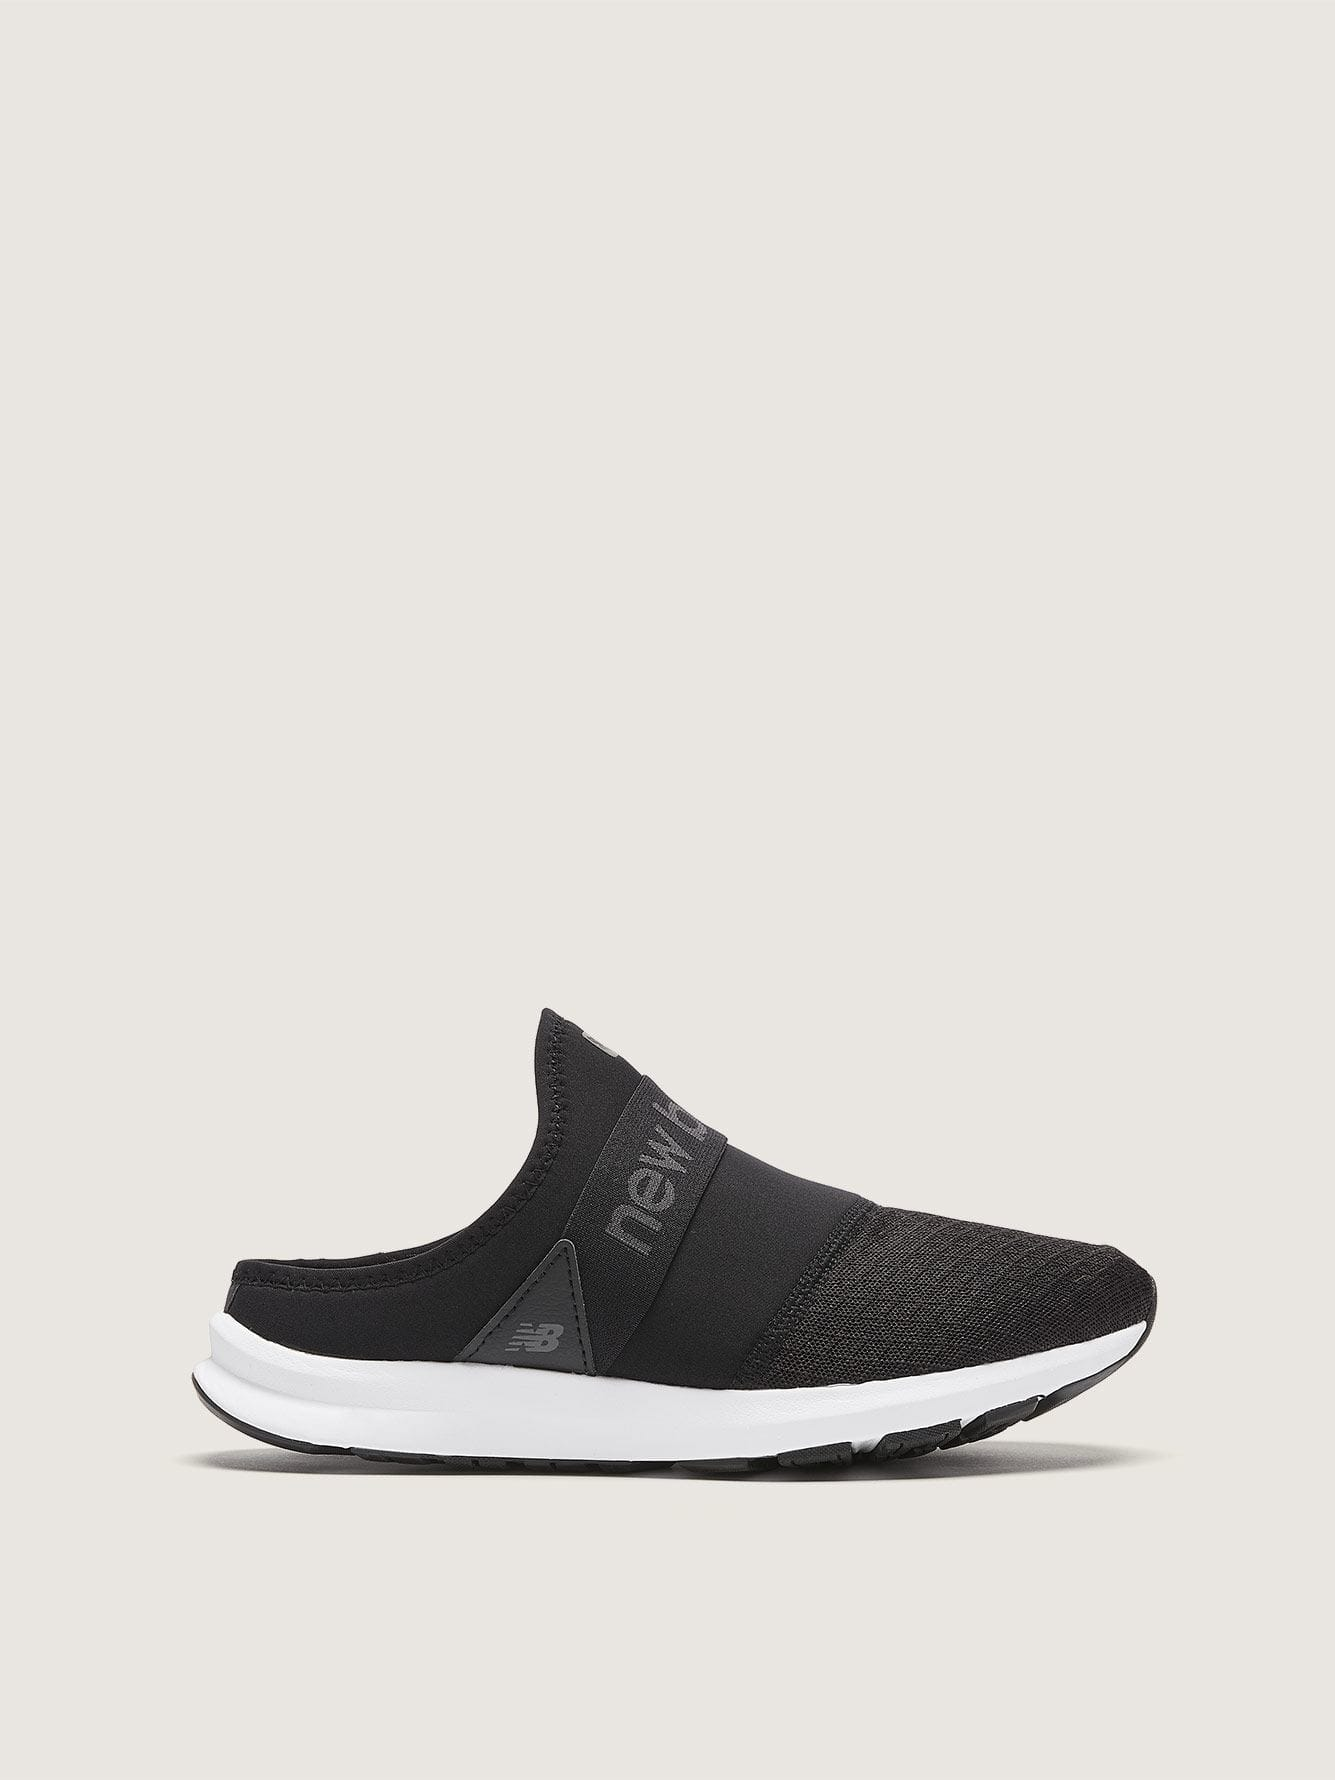 New Balance, Fuelcore Nergize - Wide Width Mules